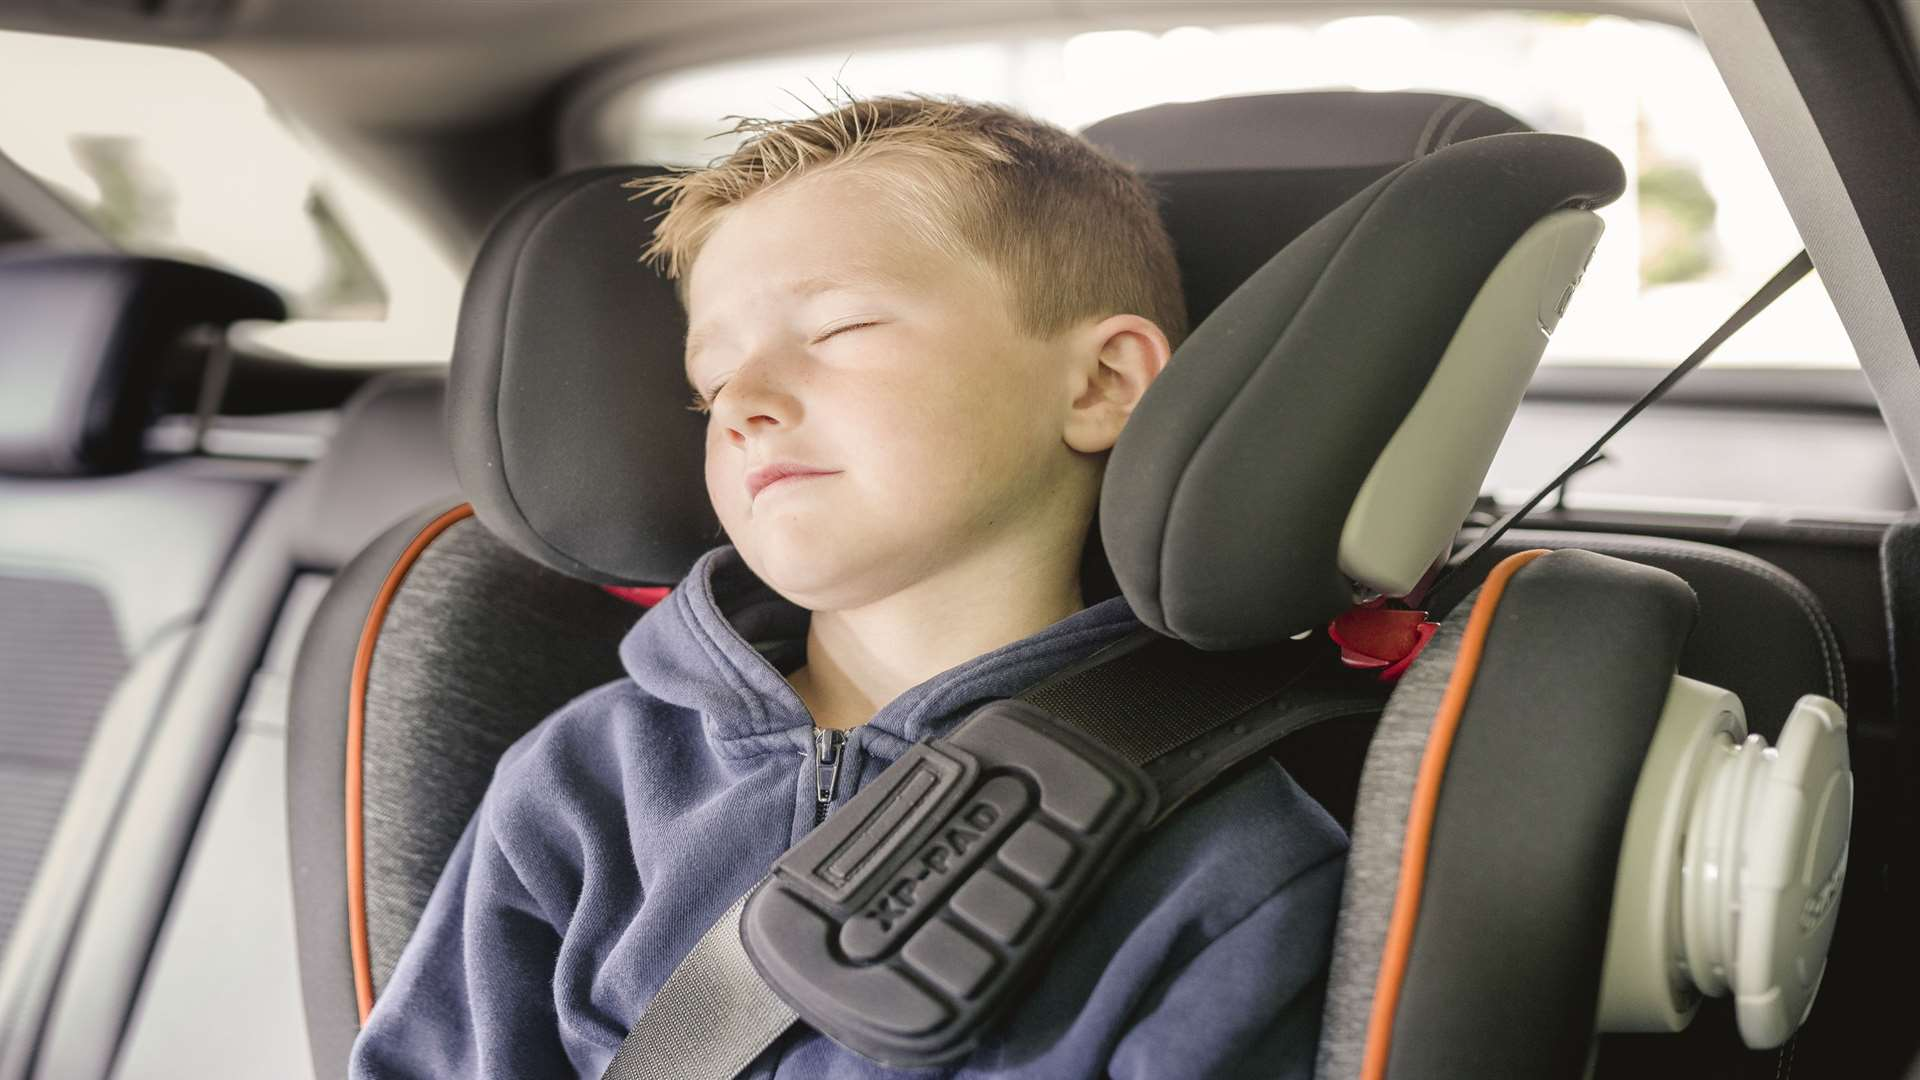 Children must be in a car seat until they are 135cm tall or 12 years old - whichever comes first